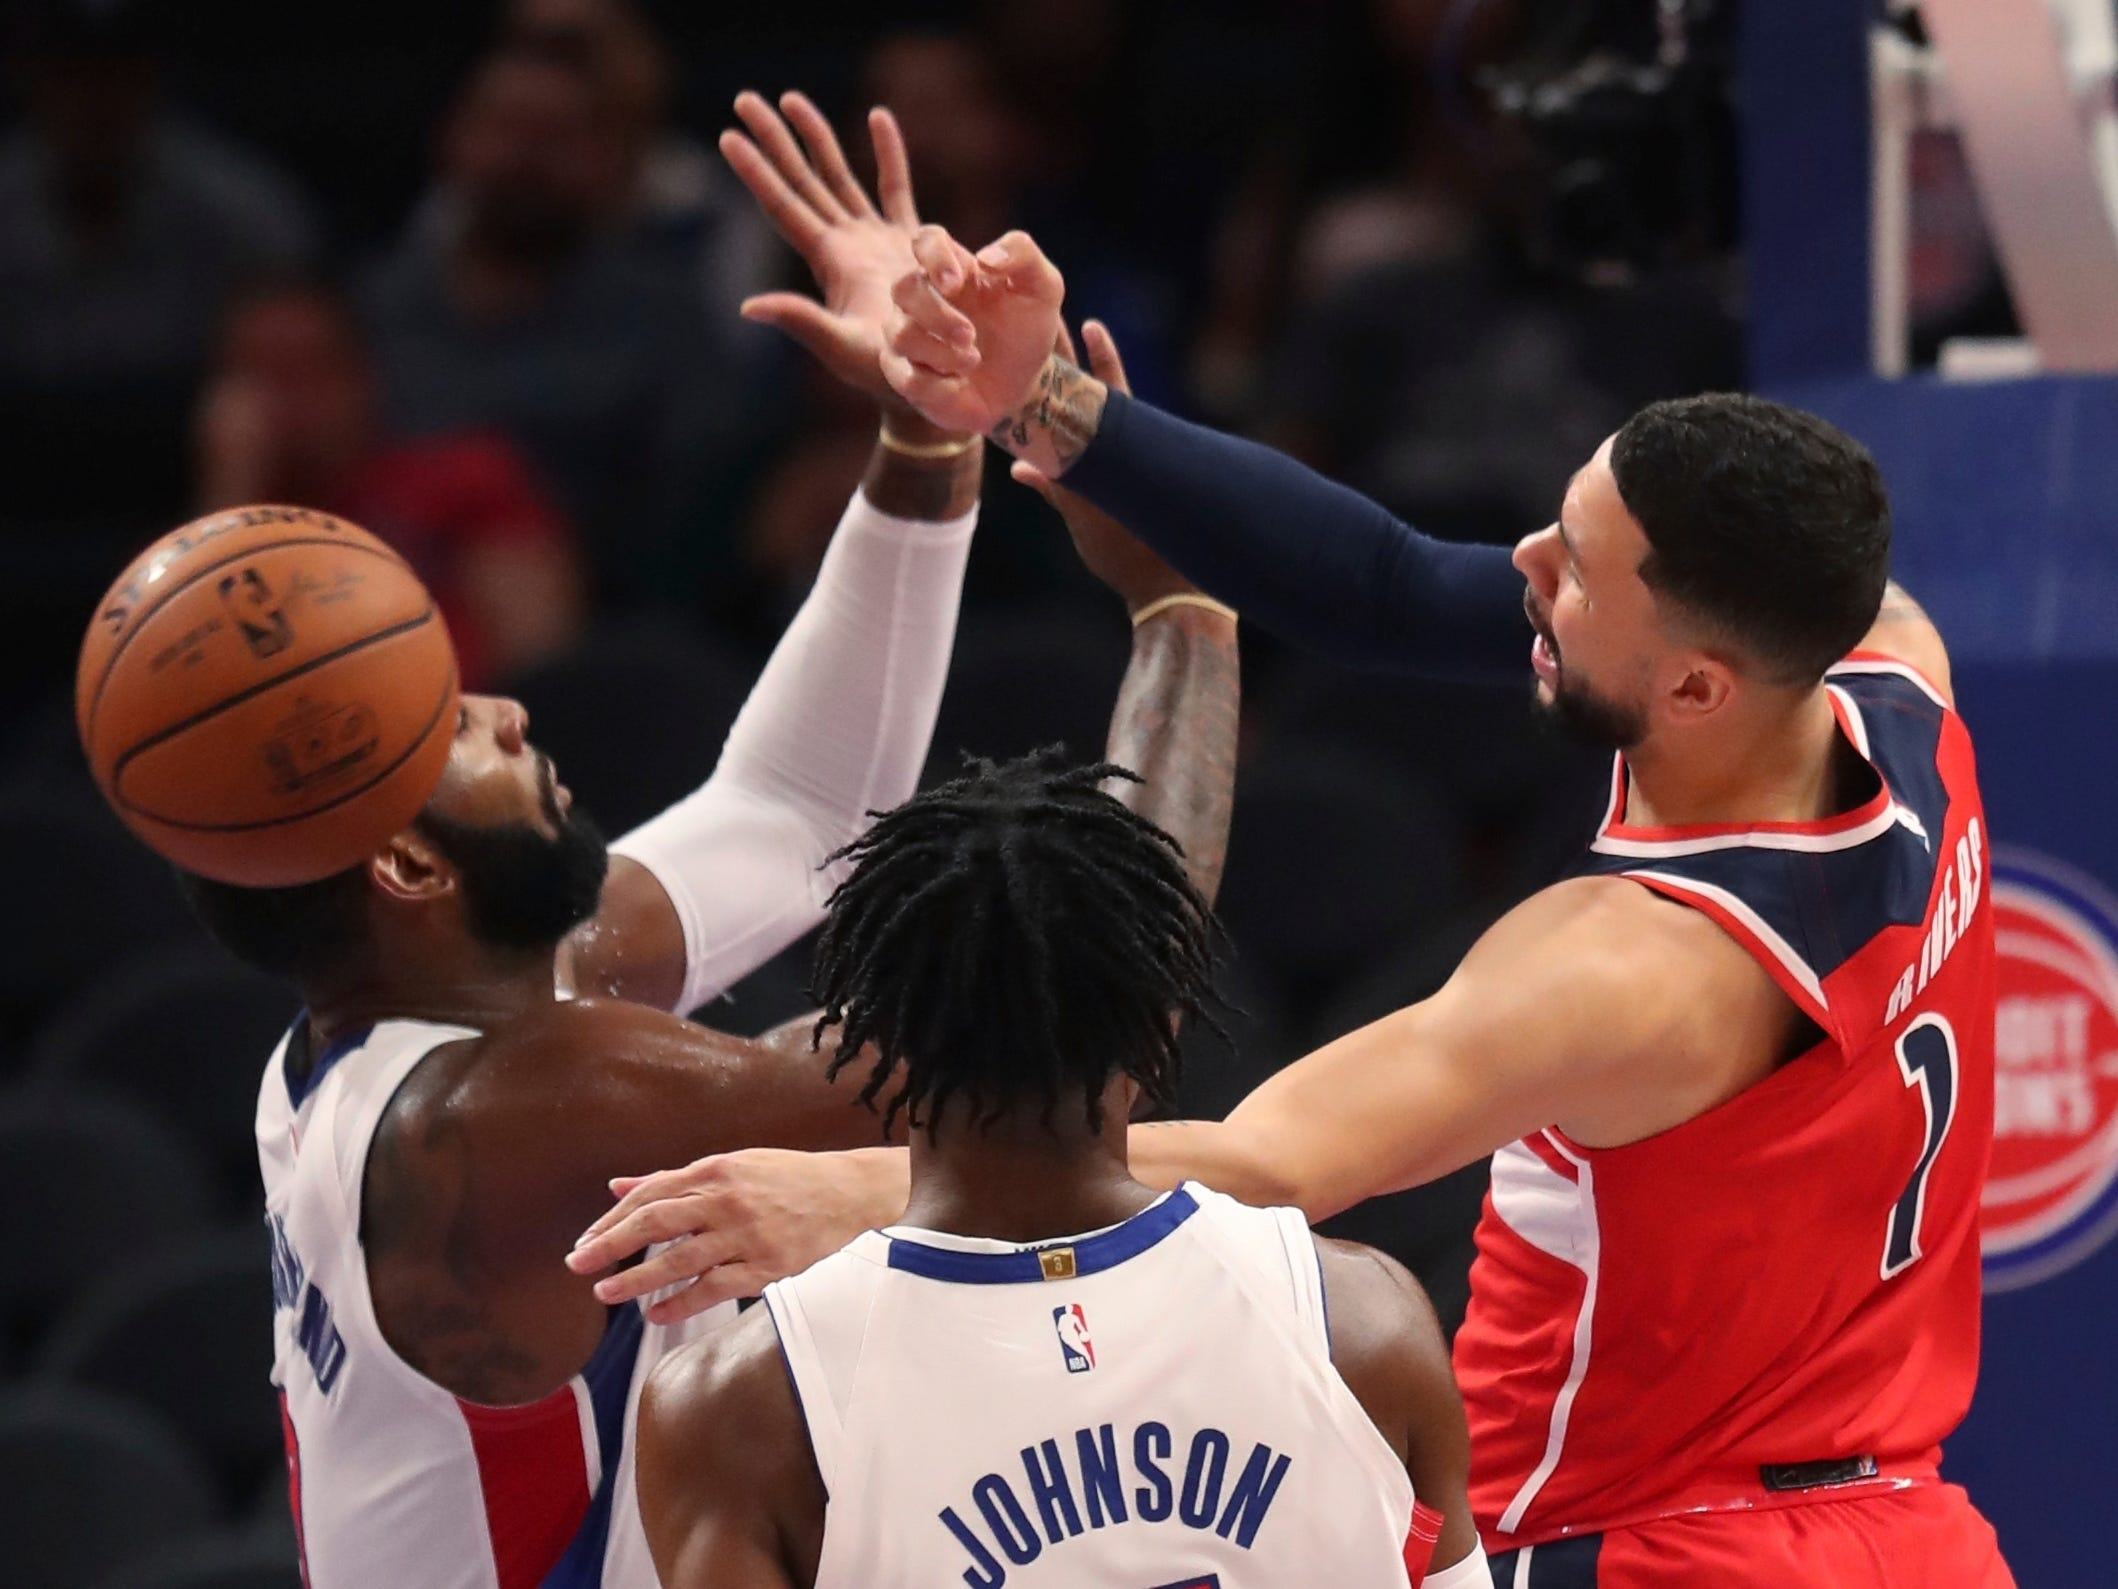 Washington Wizards guard Austin Rivers (1), defended by Detroit Pistons center Andre Drummond, left, passes the ball during the first half.